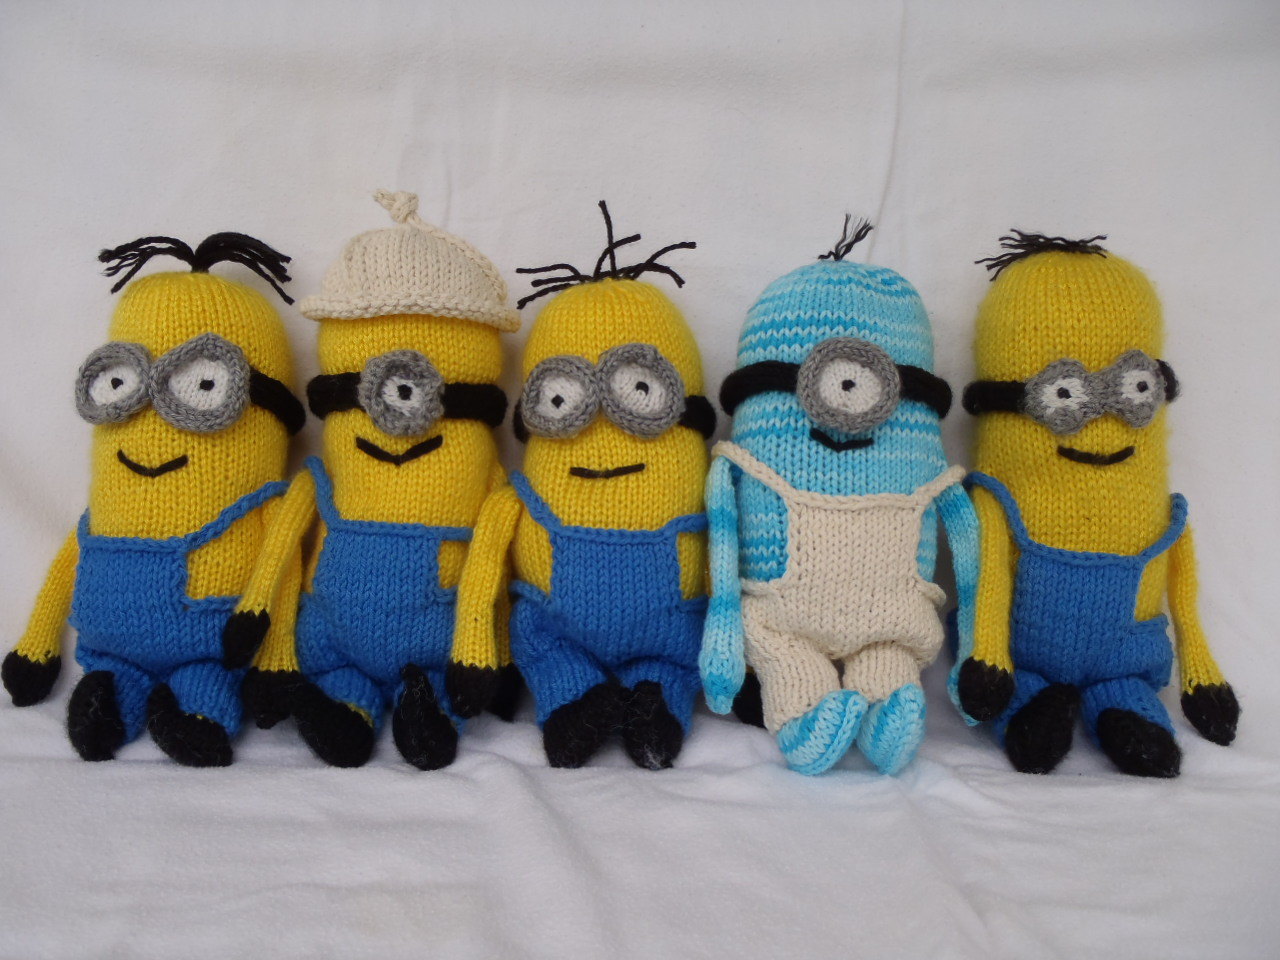 Small Heart Knitting Pattern : Stanas Critters Etc.: Knitting Pattern for Minions - Part 2